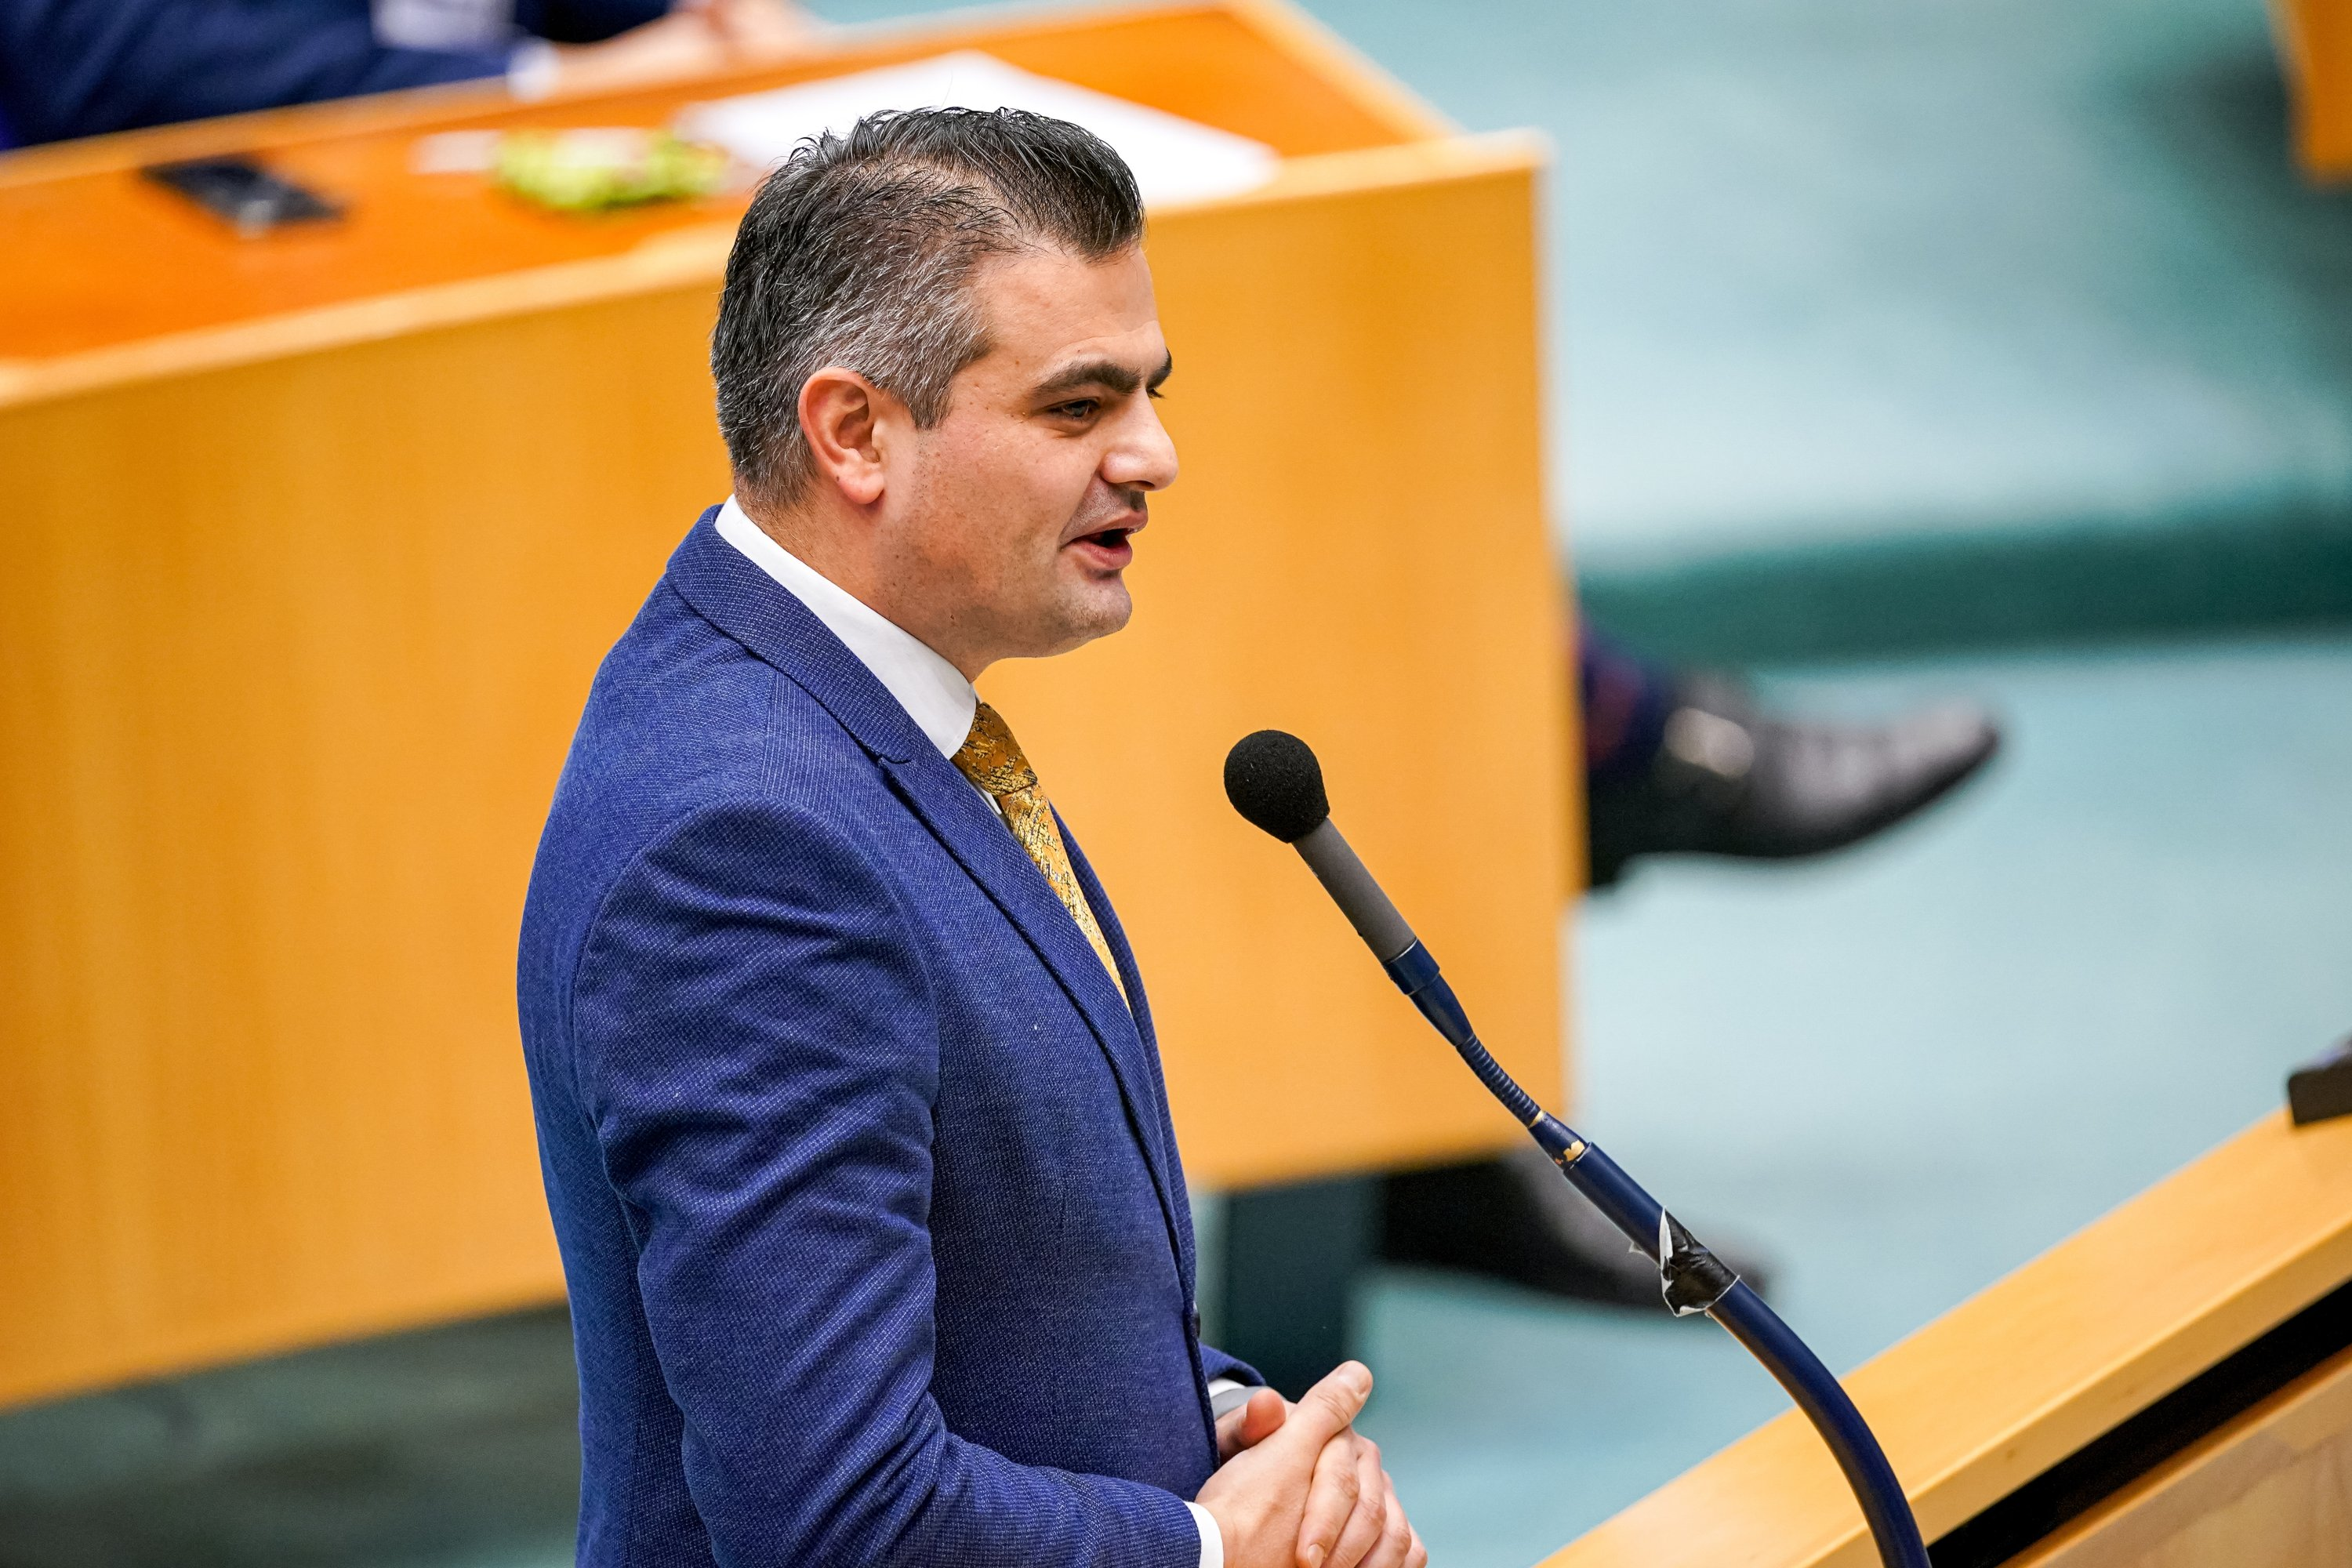 Tunahan Kuzu of DENK seen during the plenary debate in the Tweede kamer parliament on January 12, 2021 in The Hague, Netherlands. (Getty Images)